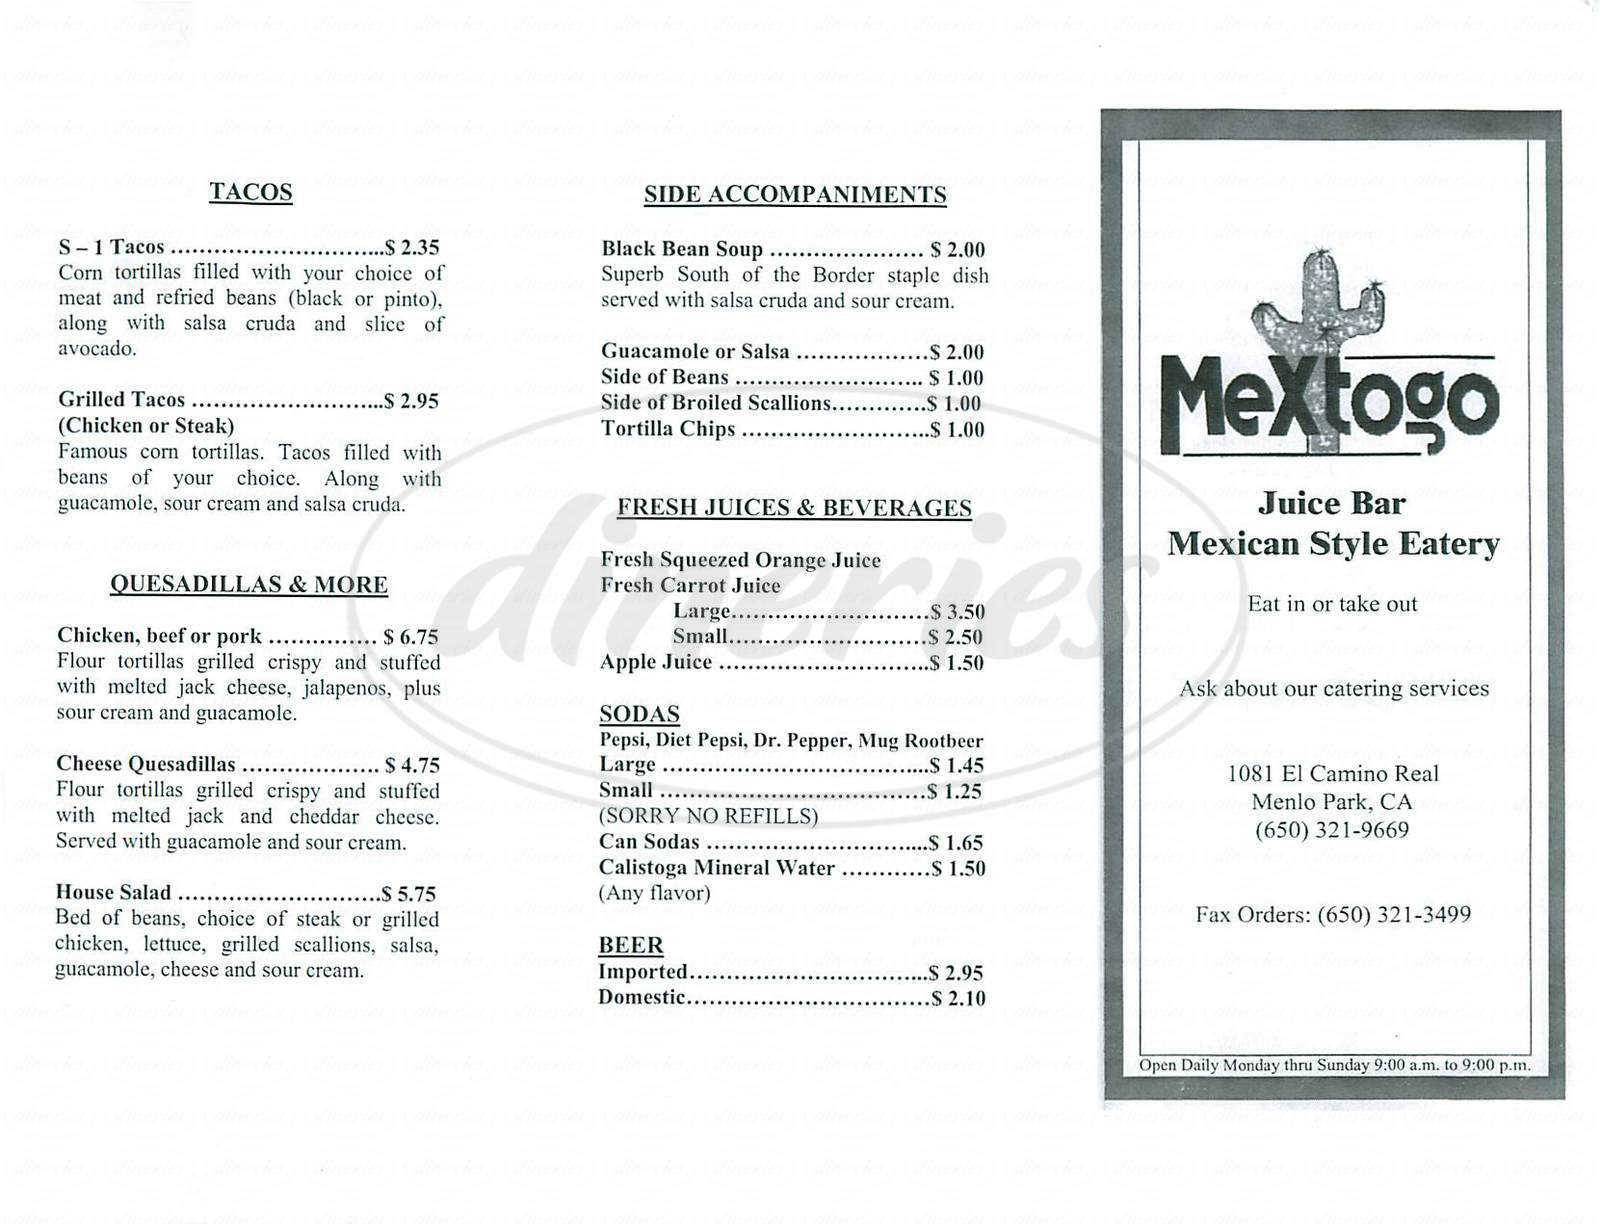 menu for Mextogo